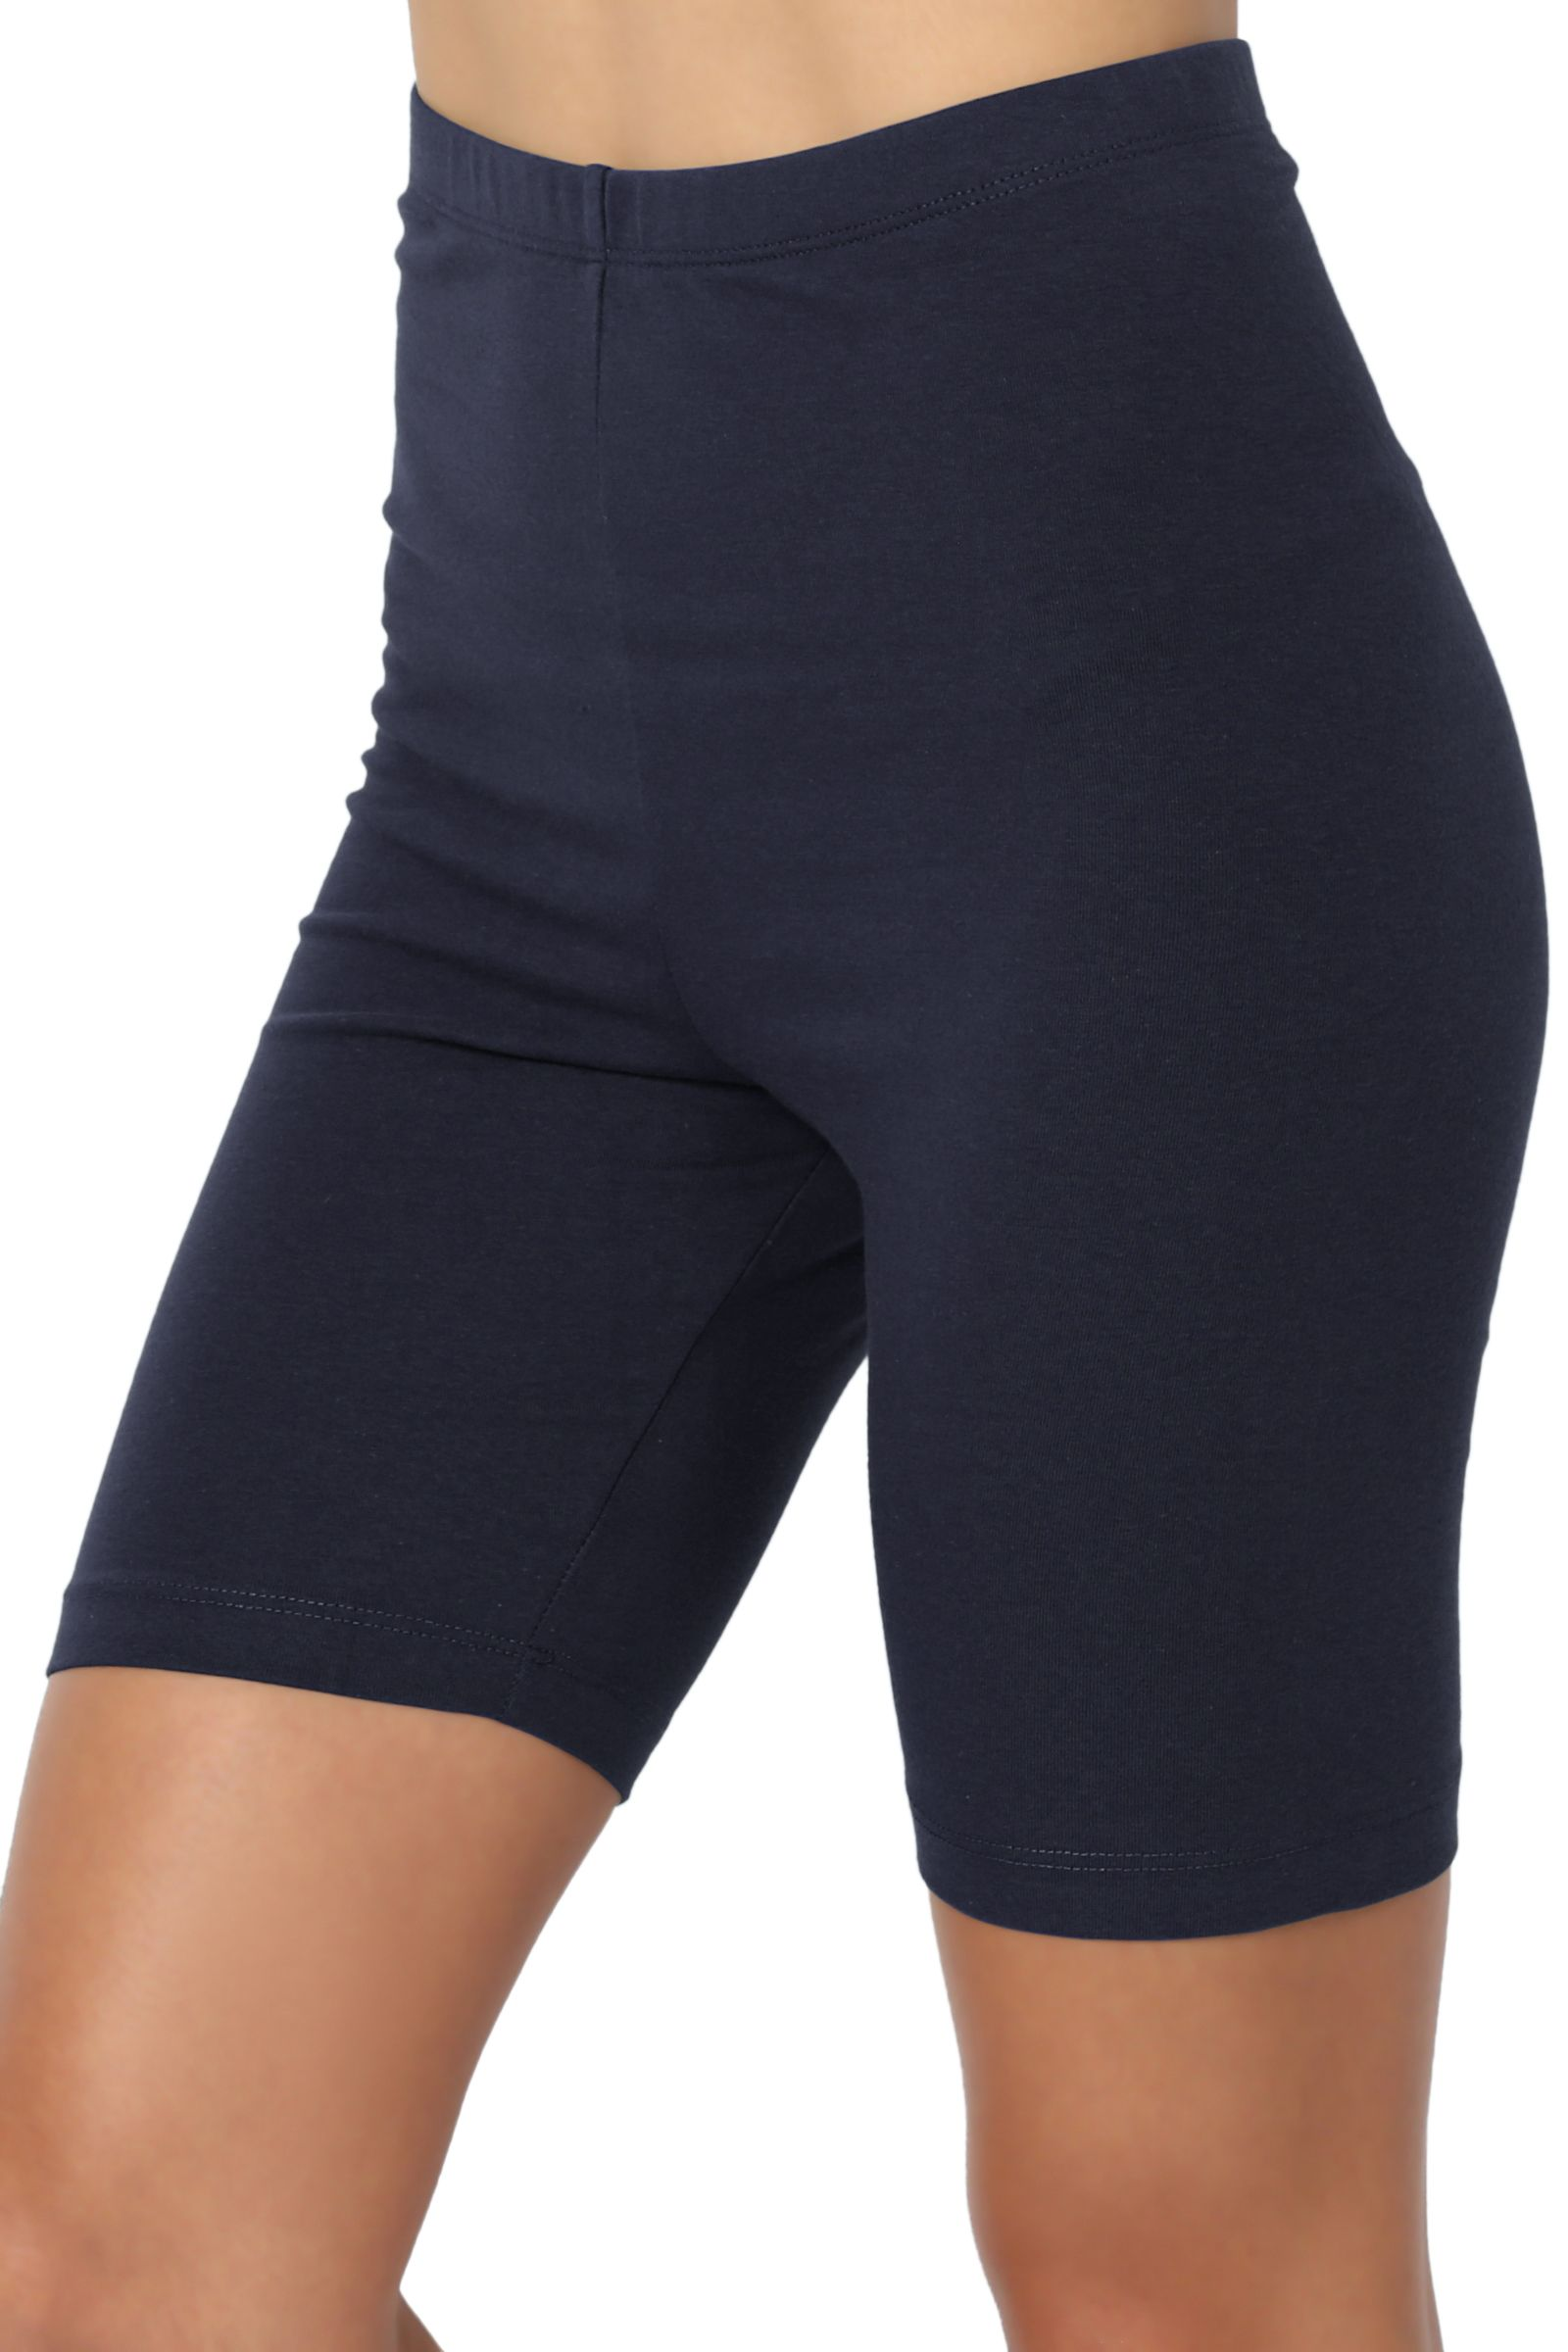 2815ae0046802 Buy TheMogan Women's S~3X Mid Thigh Stretch Cotton Active Bermuda Under  Short Leggings at Walmart.com